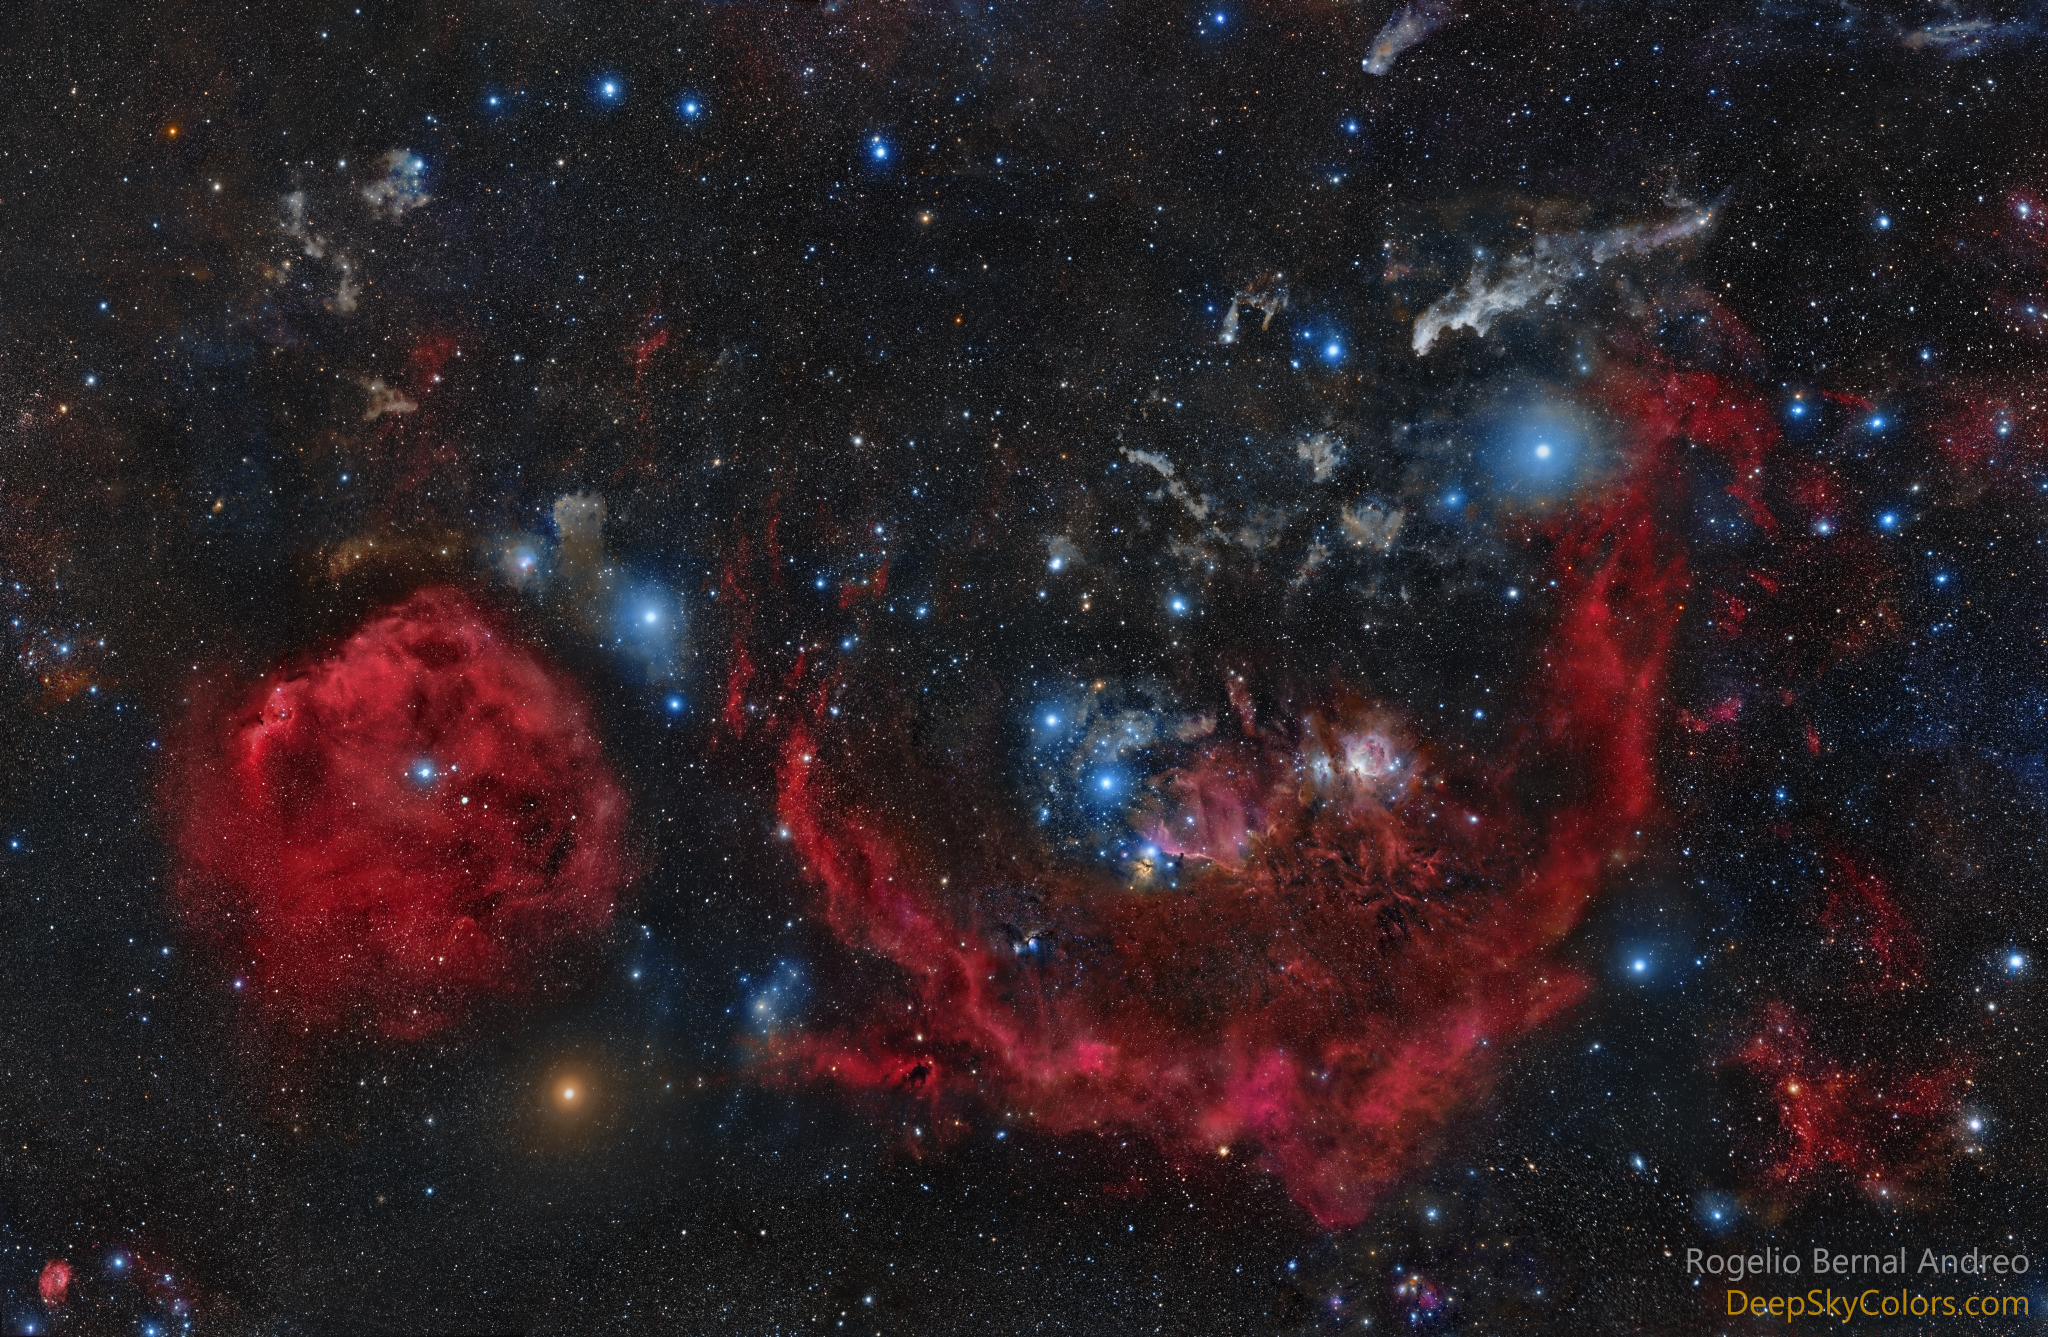 APOD: 2016 December 4 - Official Star Names for Orion